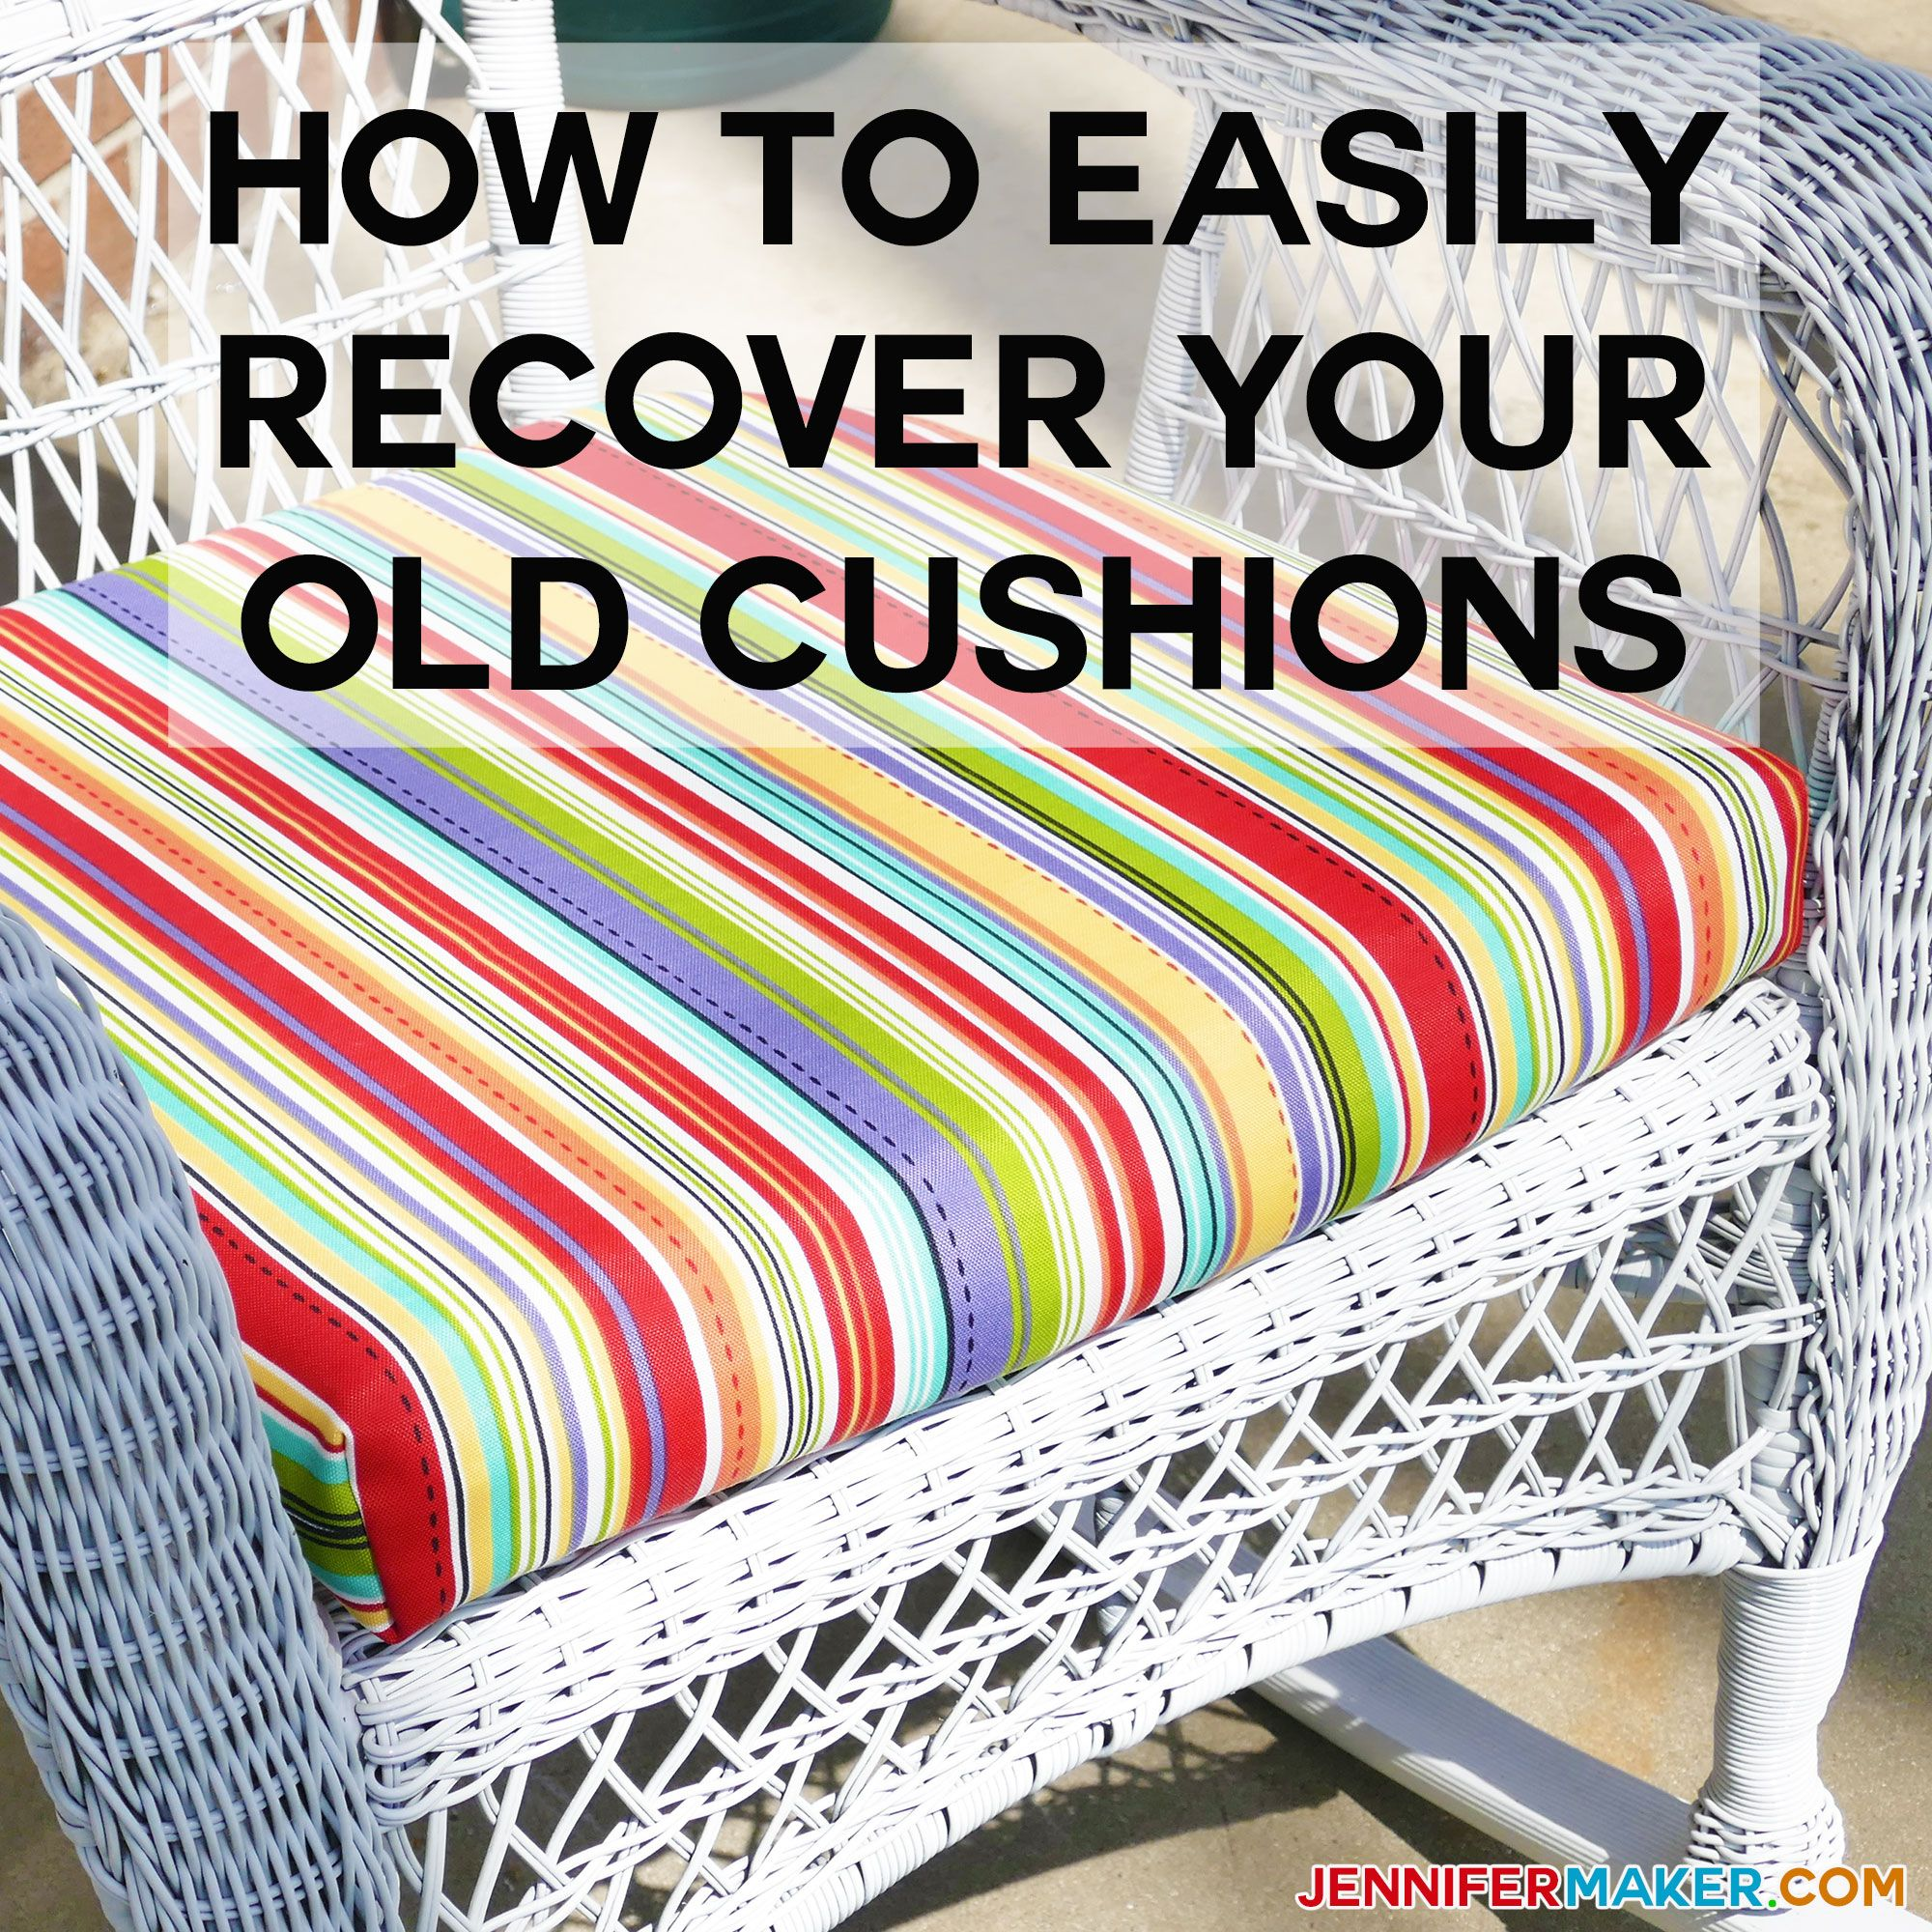 How To Recover Your Outdoor Cushions Quick Easy Jennifer Maker